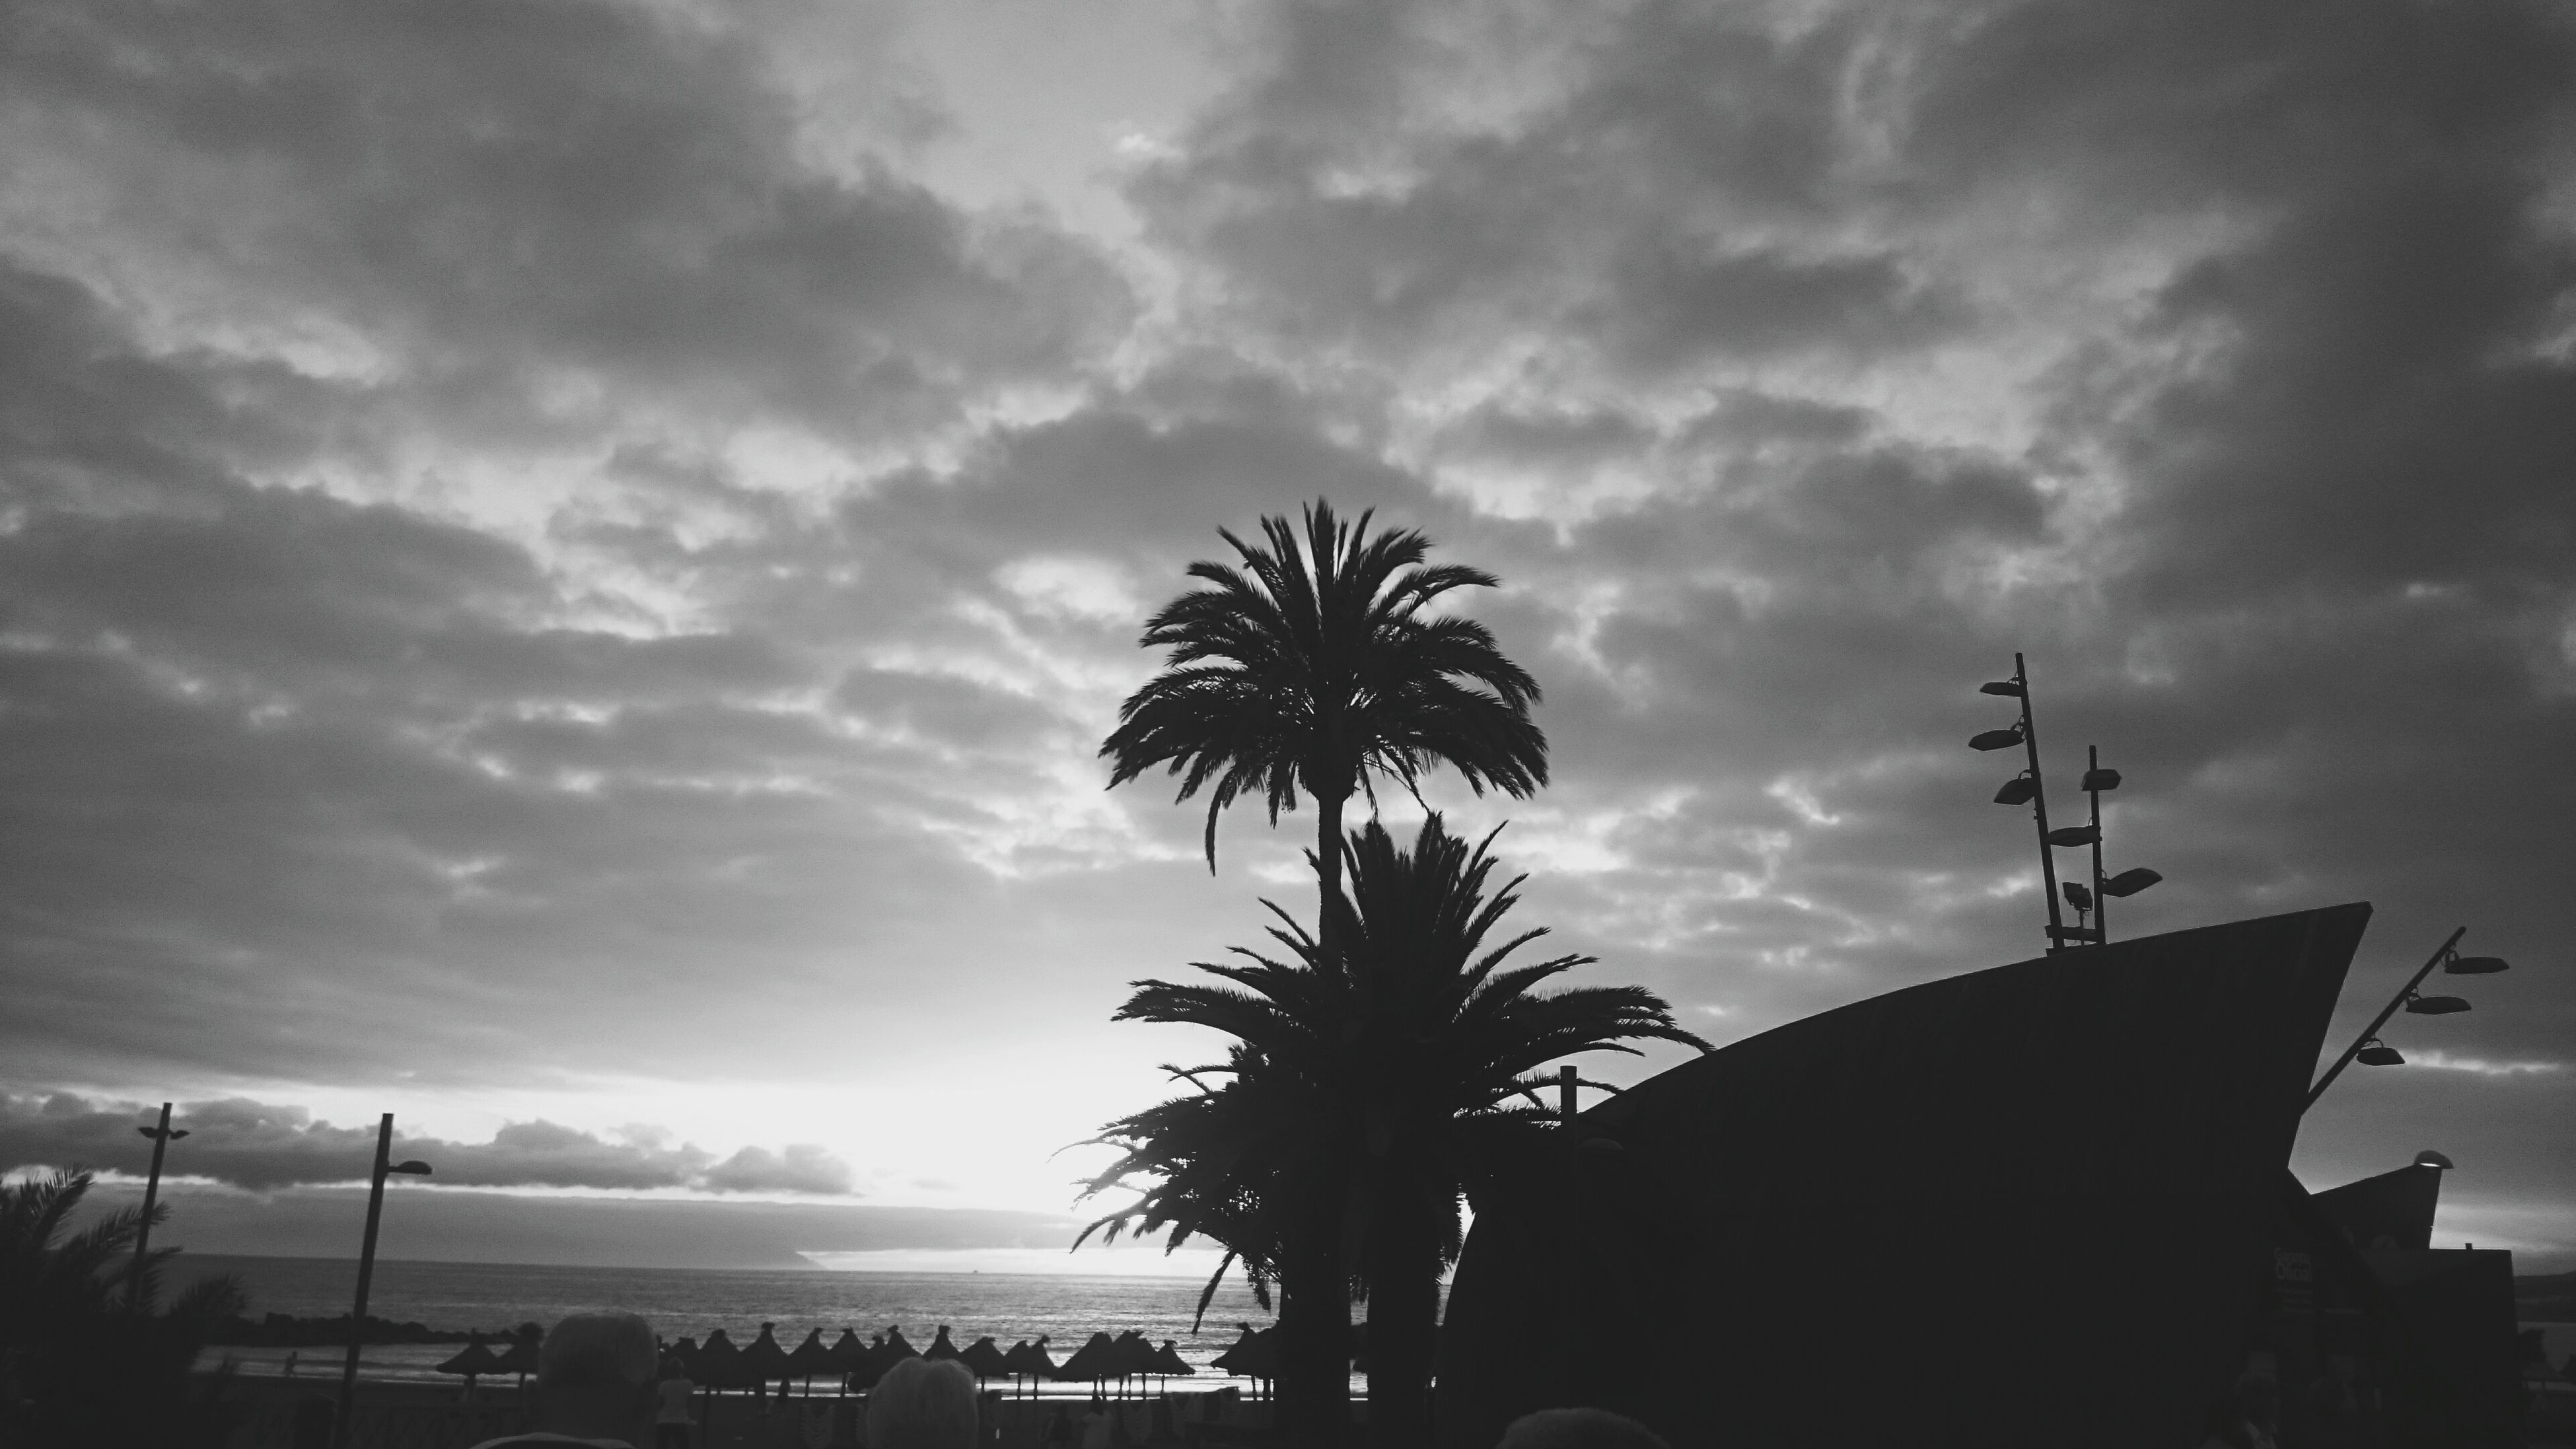 palm tree, silhouette, sky, tree, low angle view, cloud - sky, sunset, growth, tranquil scene, overcast, nature, outdoors, tranquility, scenics, cloud, tall - high, atmospheric mood, beauty in nature, cloudy, solitude, cloudscape, tourism, tropical tree, no people, coconut palm tree, dramatic sky, majestic, atmosphere, moody sky, outline